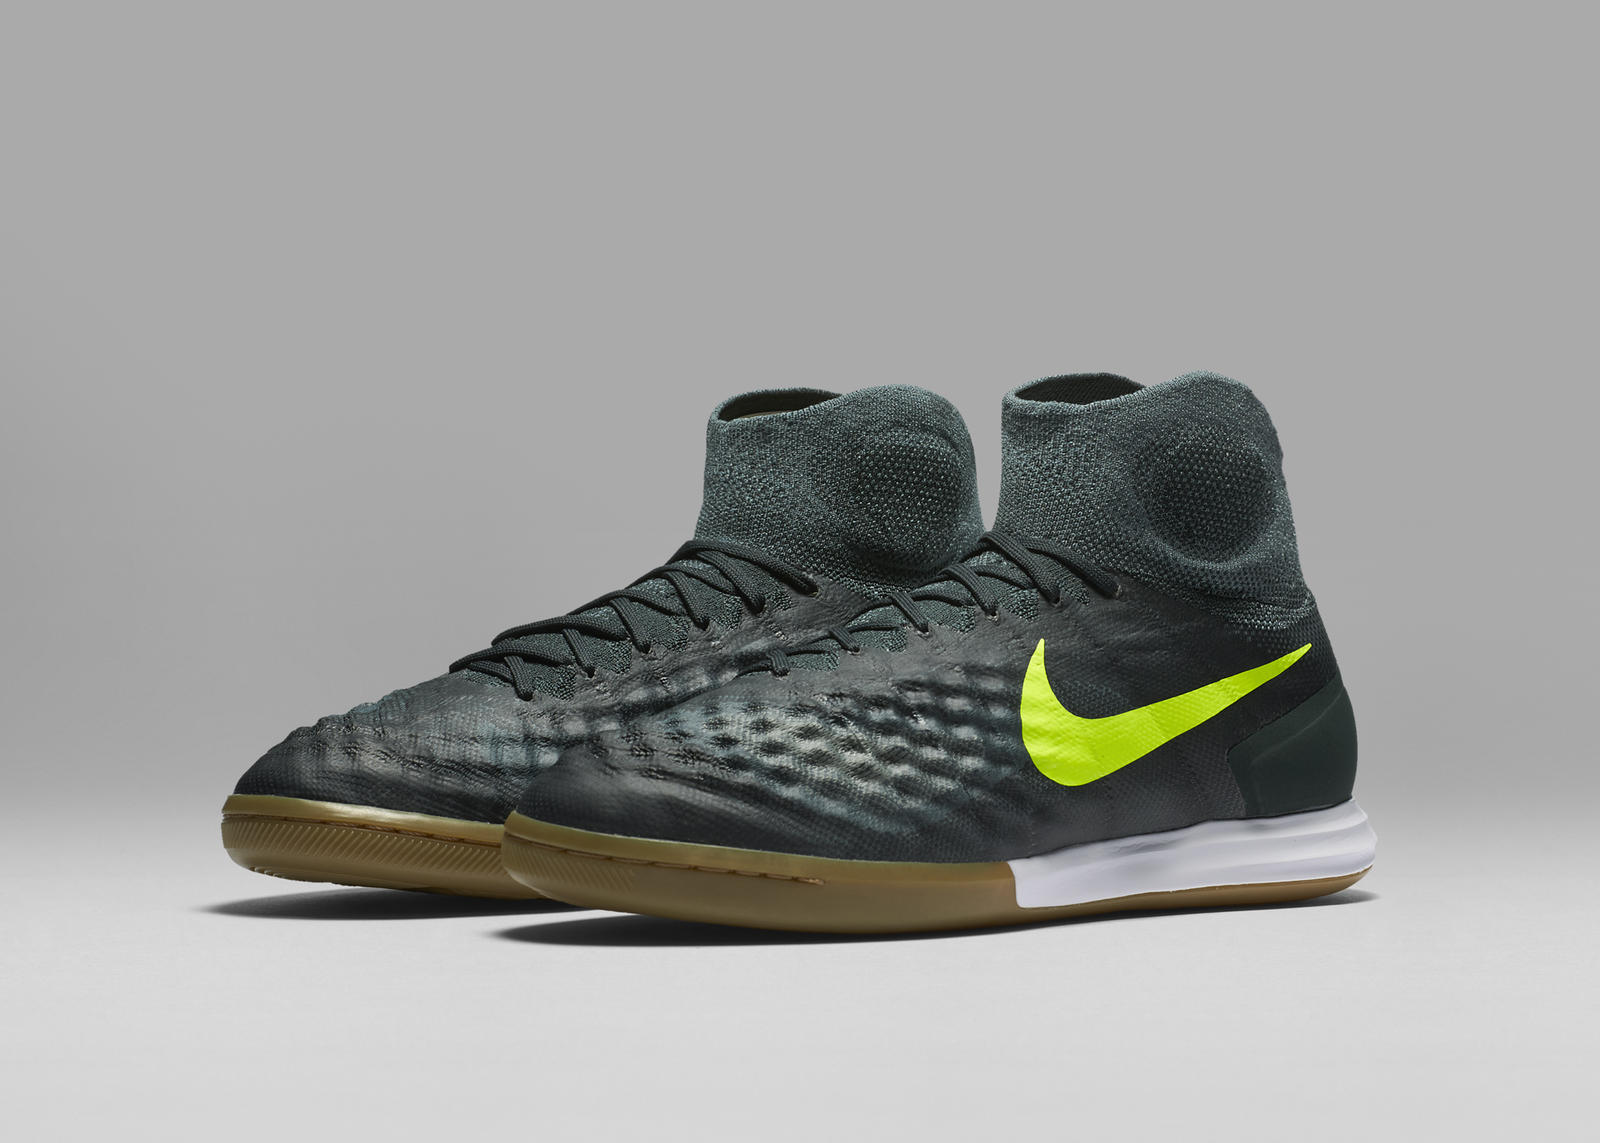 nikefootballx_floodlights_magistax_proximo_ic